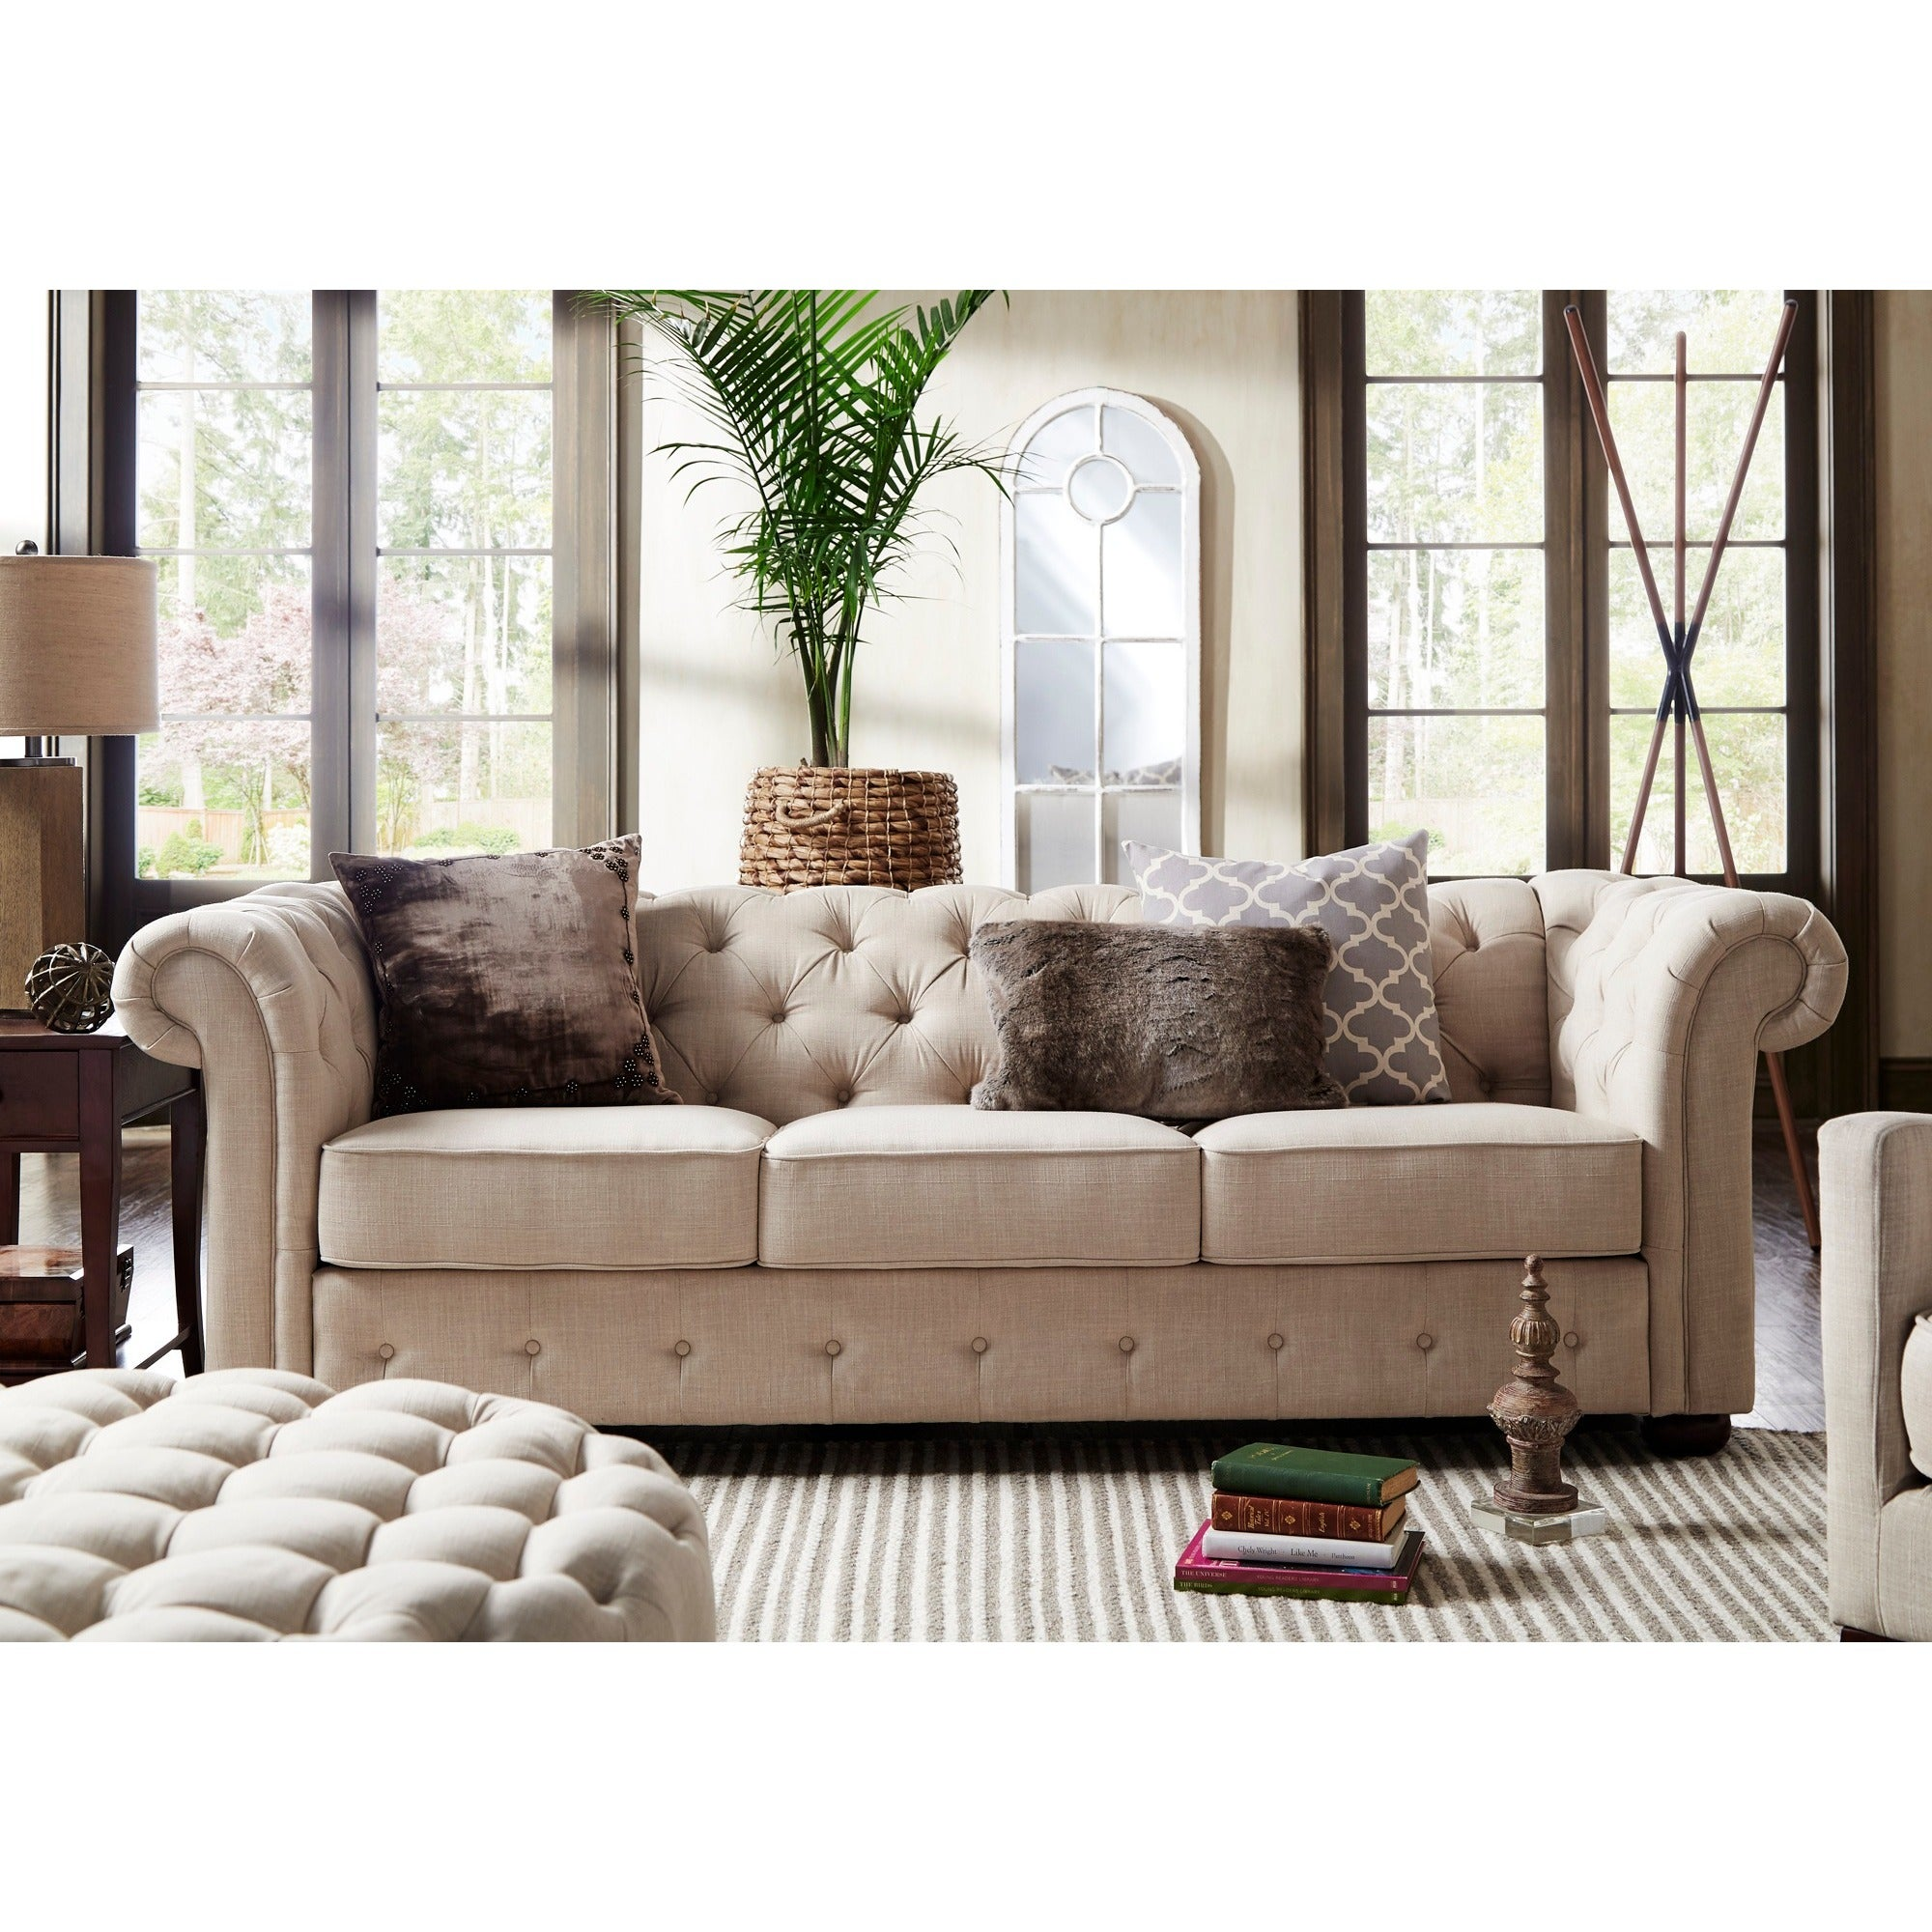 Knightsbridge Beige Fabric Button Tufted Chesterfield Sofa And Room Set By  INSPIRE Q Artisan   Free Shipping Today   Overstock   16005239